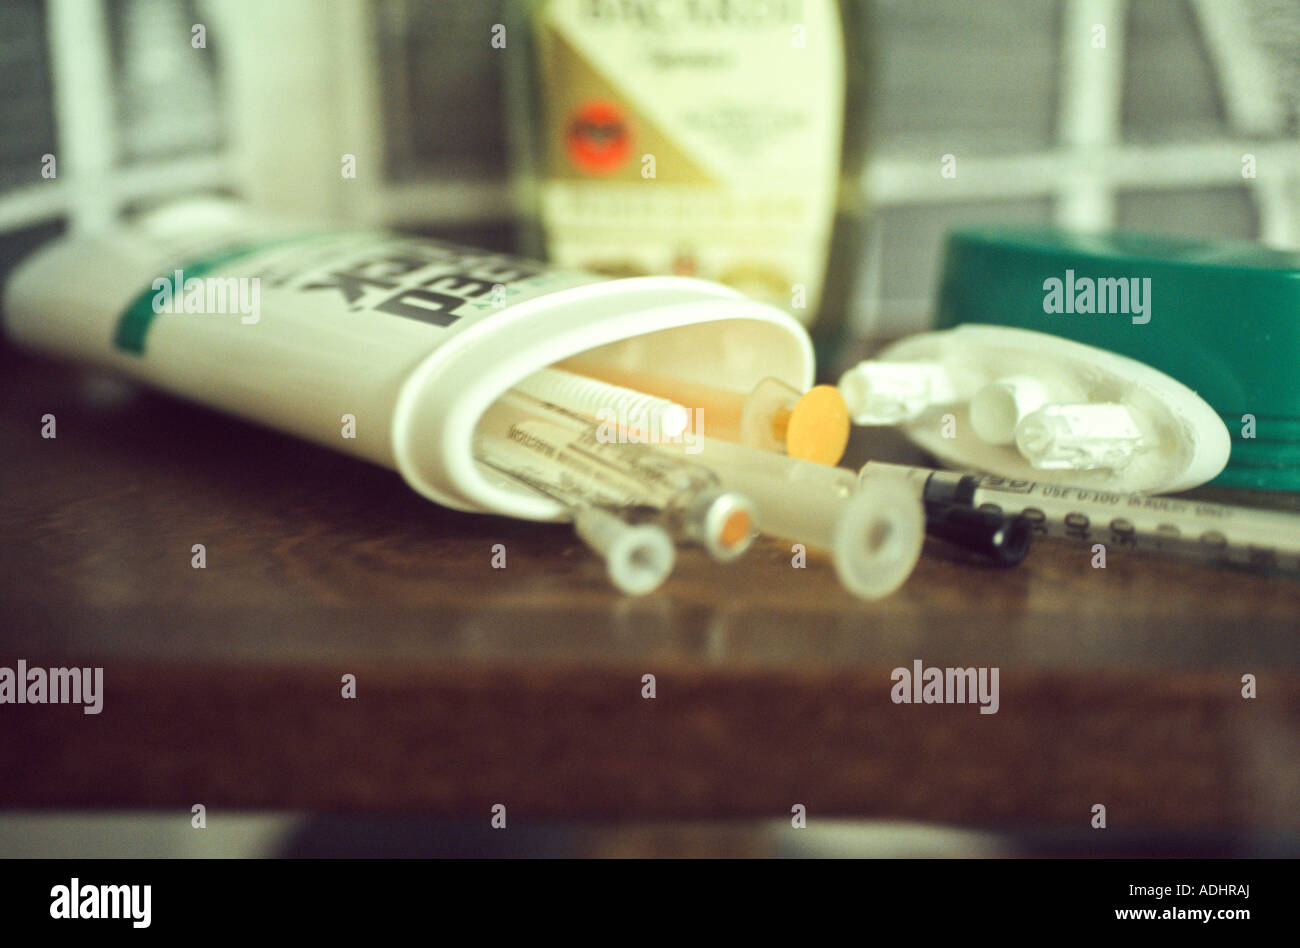 Syringes and drugs hidden inside deodorant bottle. Confiscated from inmate. Nebraska State Penitentiary, USA. - Stock Image